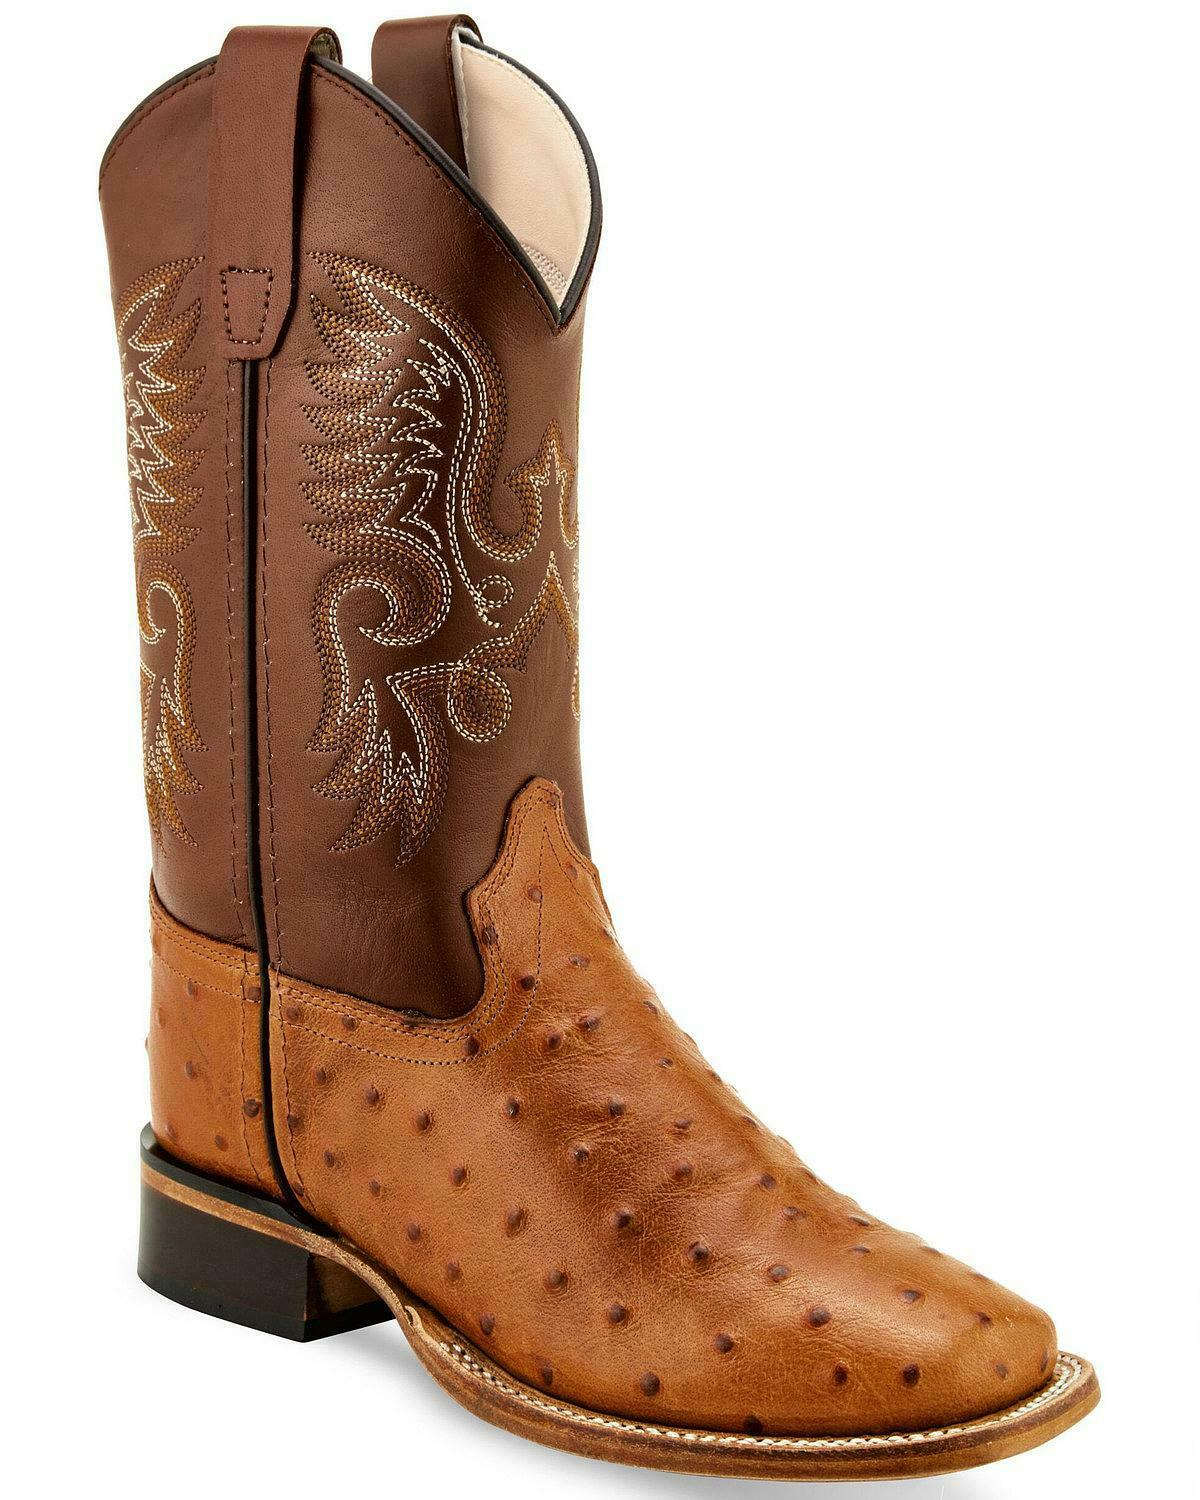 Wide Square Toe Old West Boys/' Ostrich Print Western Boot BSC1834